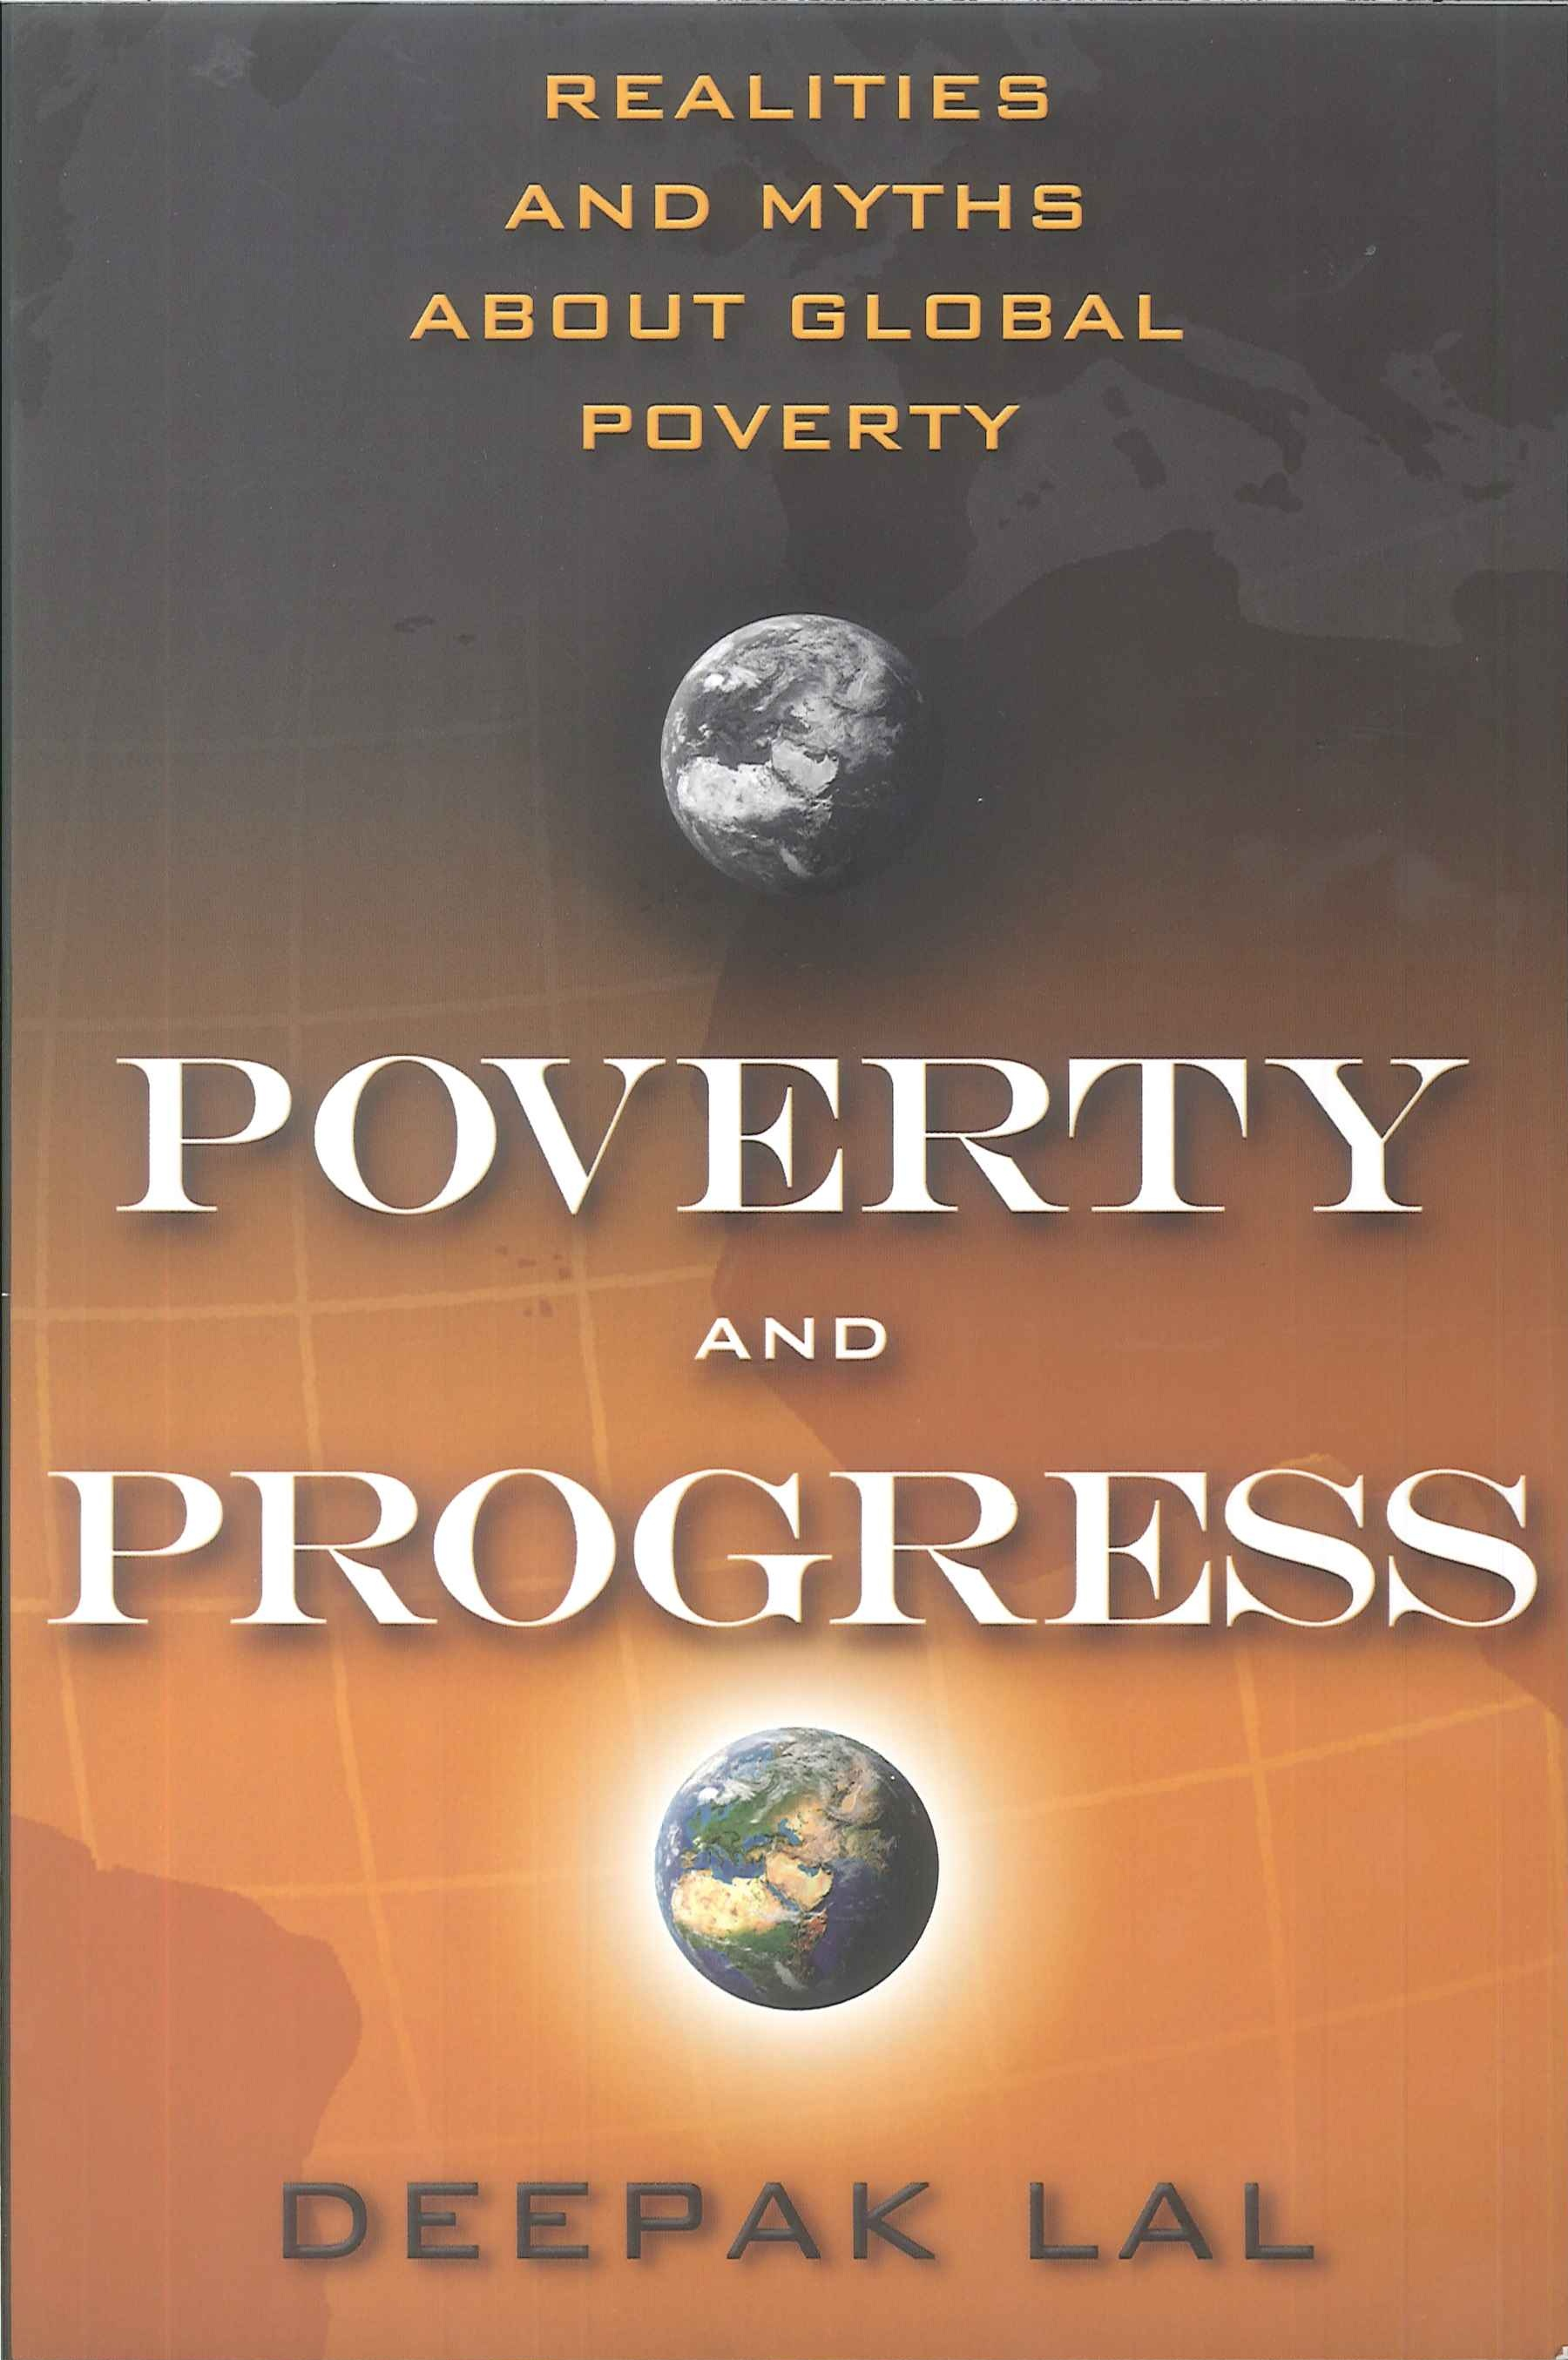 Poverty and progress:realities and myths about global poverty